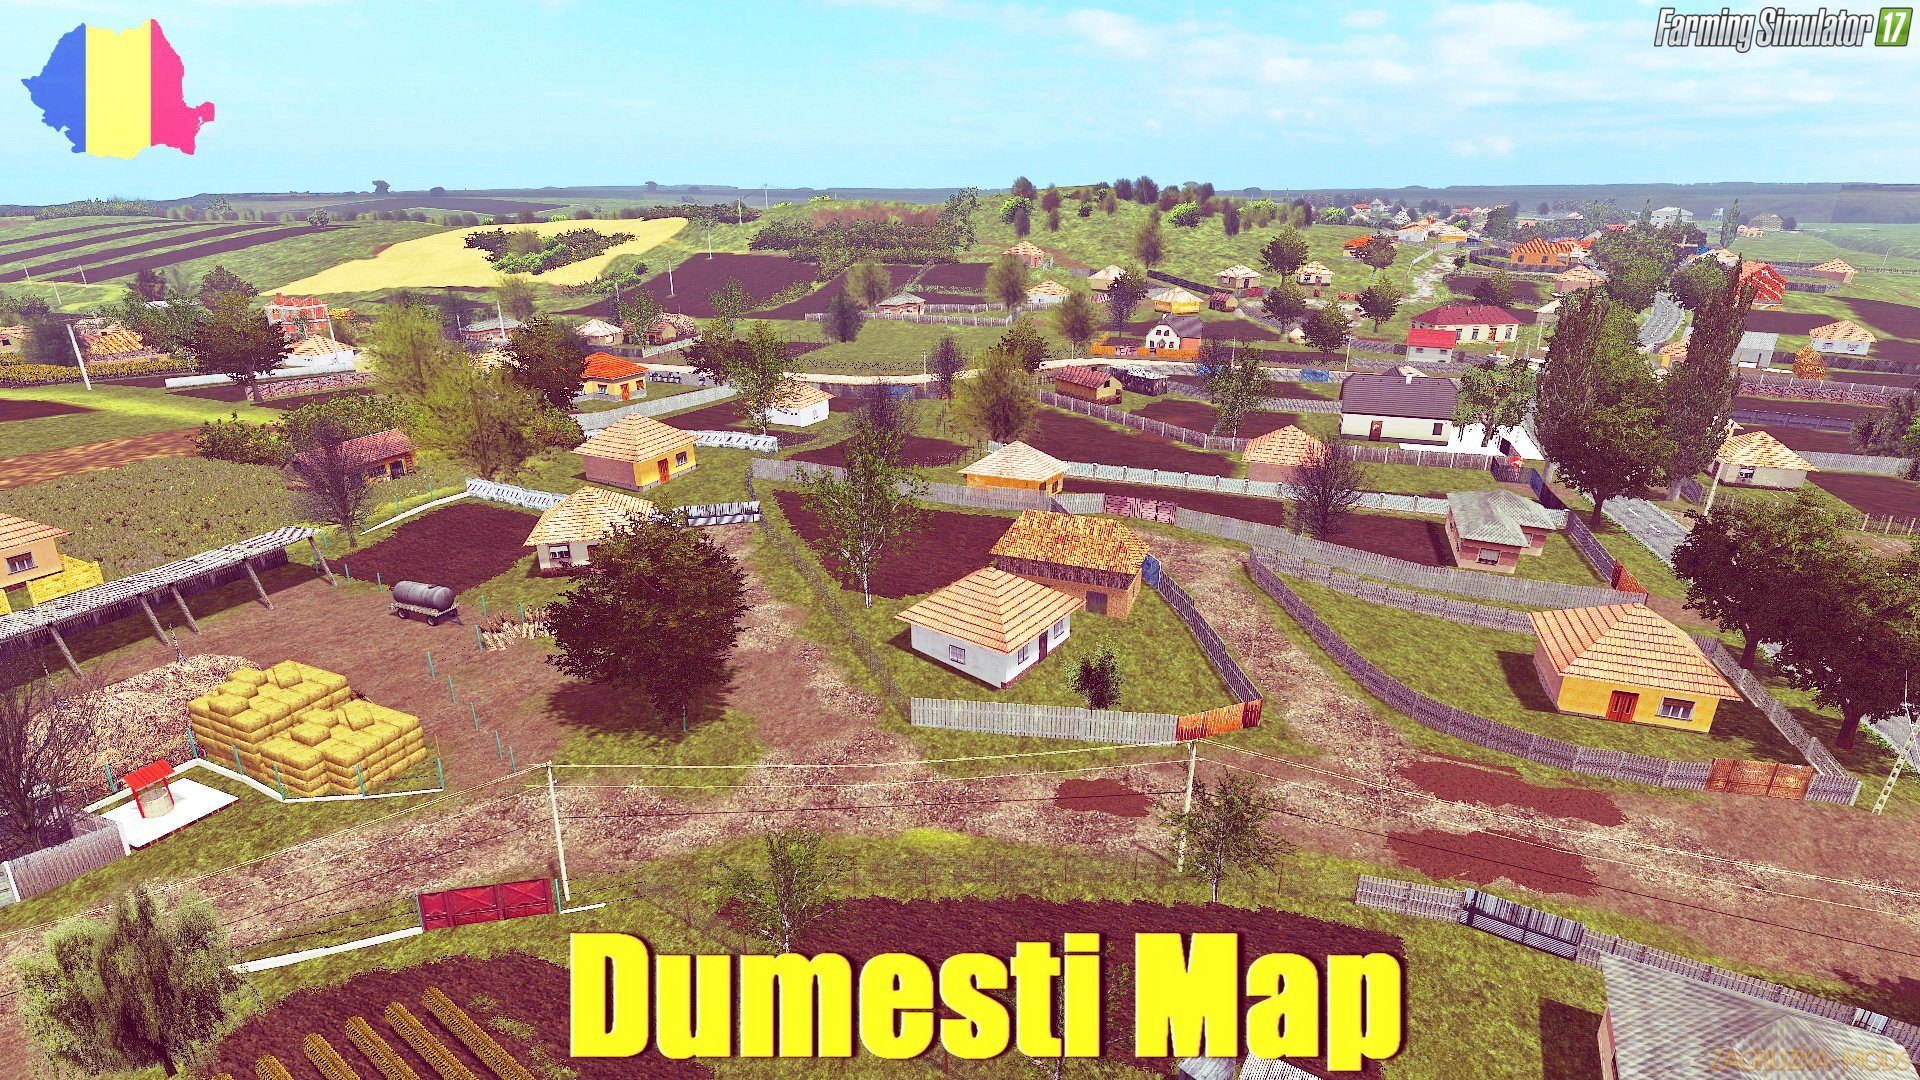 Dumesti Map v1.0 for FS 17